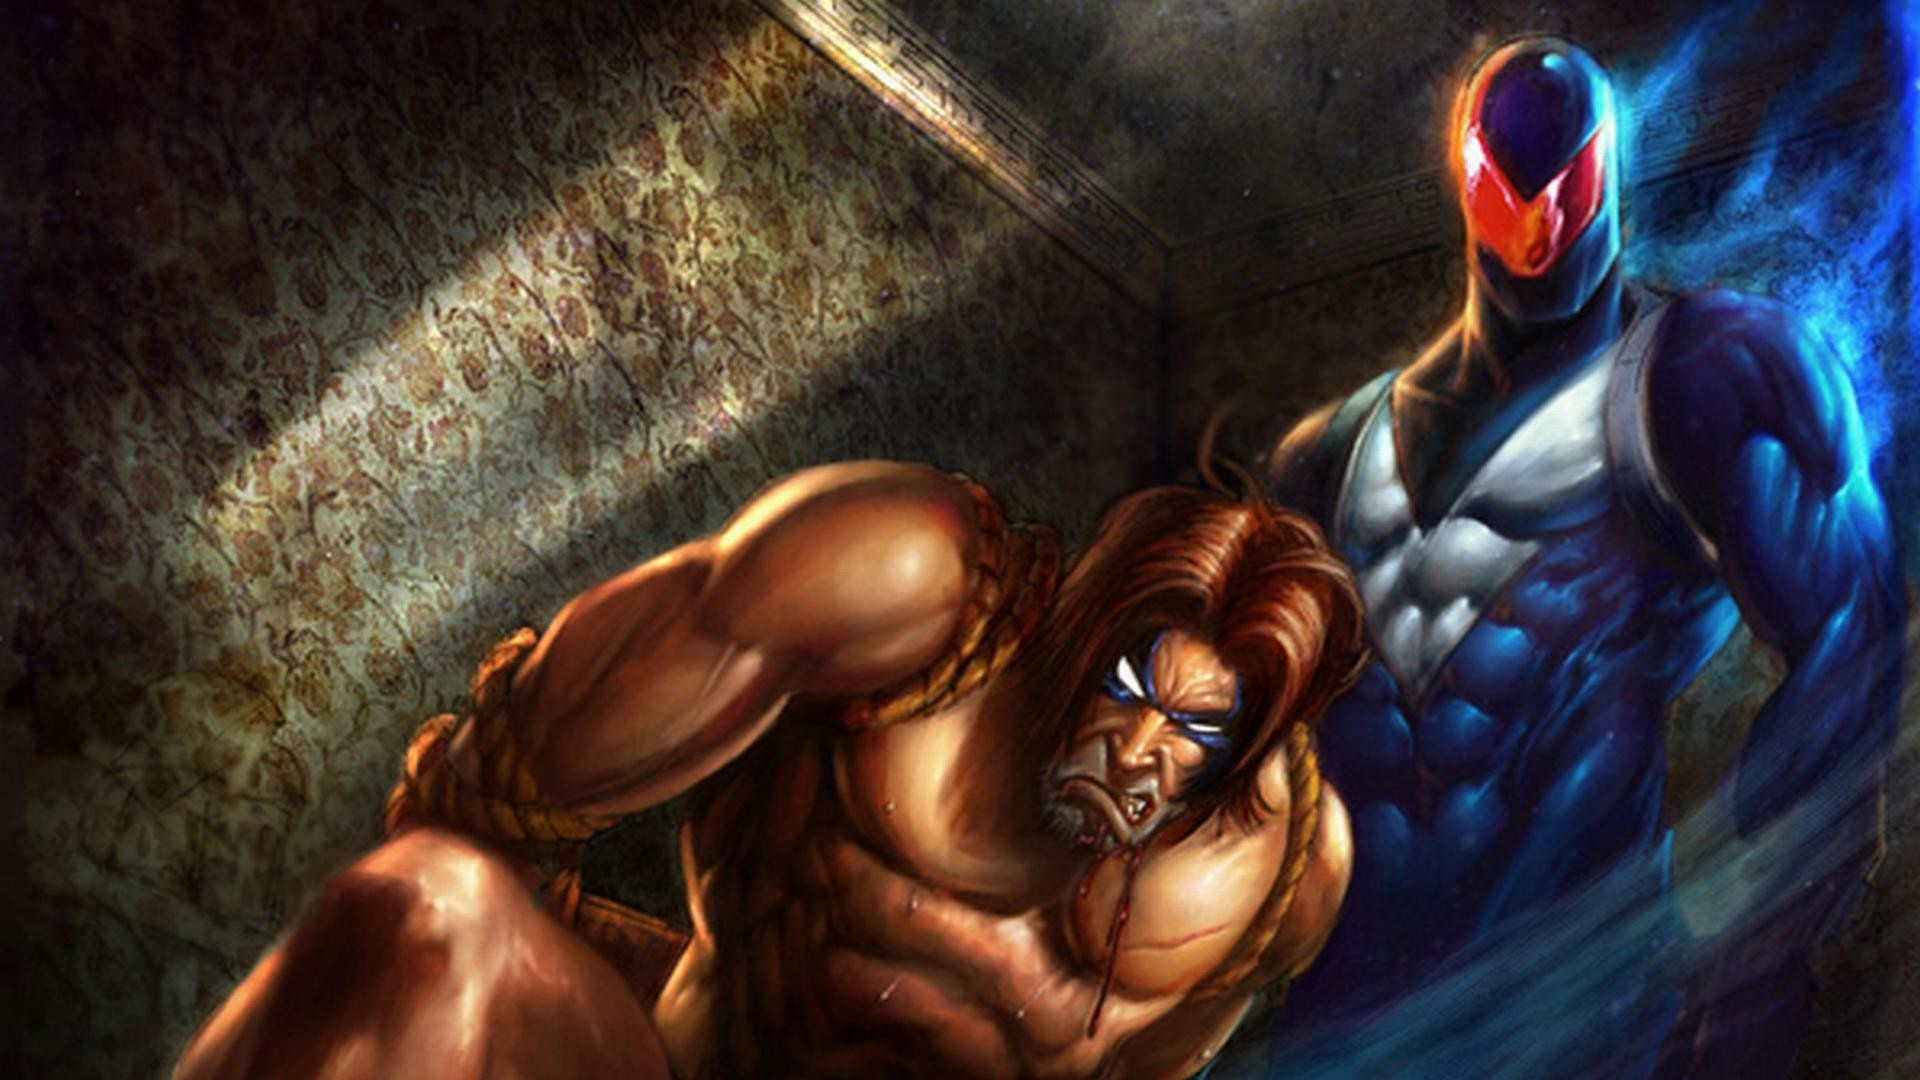 wallpaper.wiki-Pictures-HD-Nightwing-Download-PIC-WPE008071